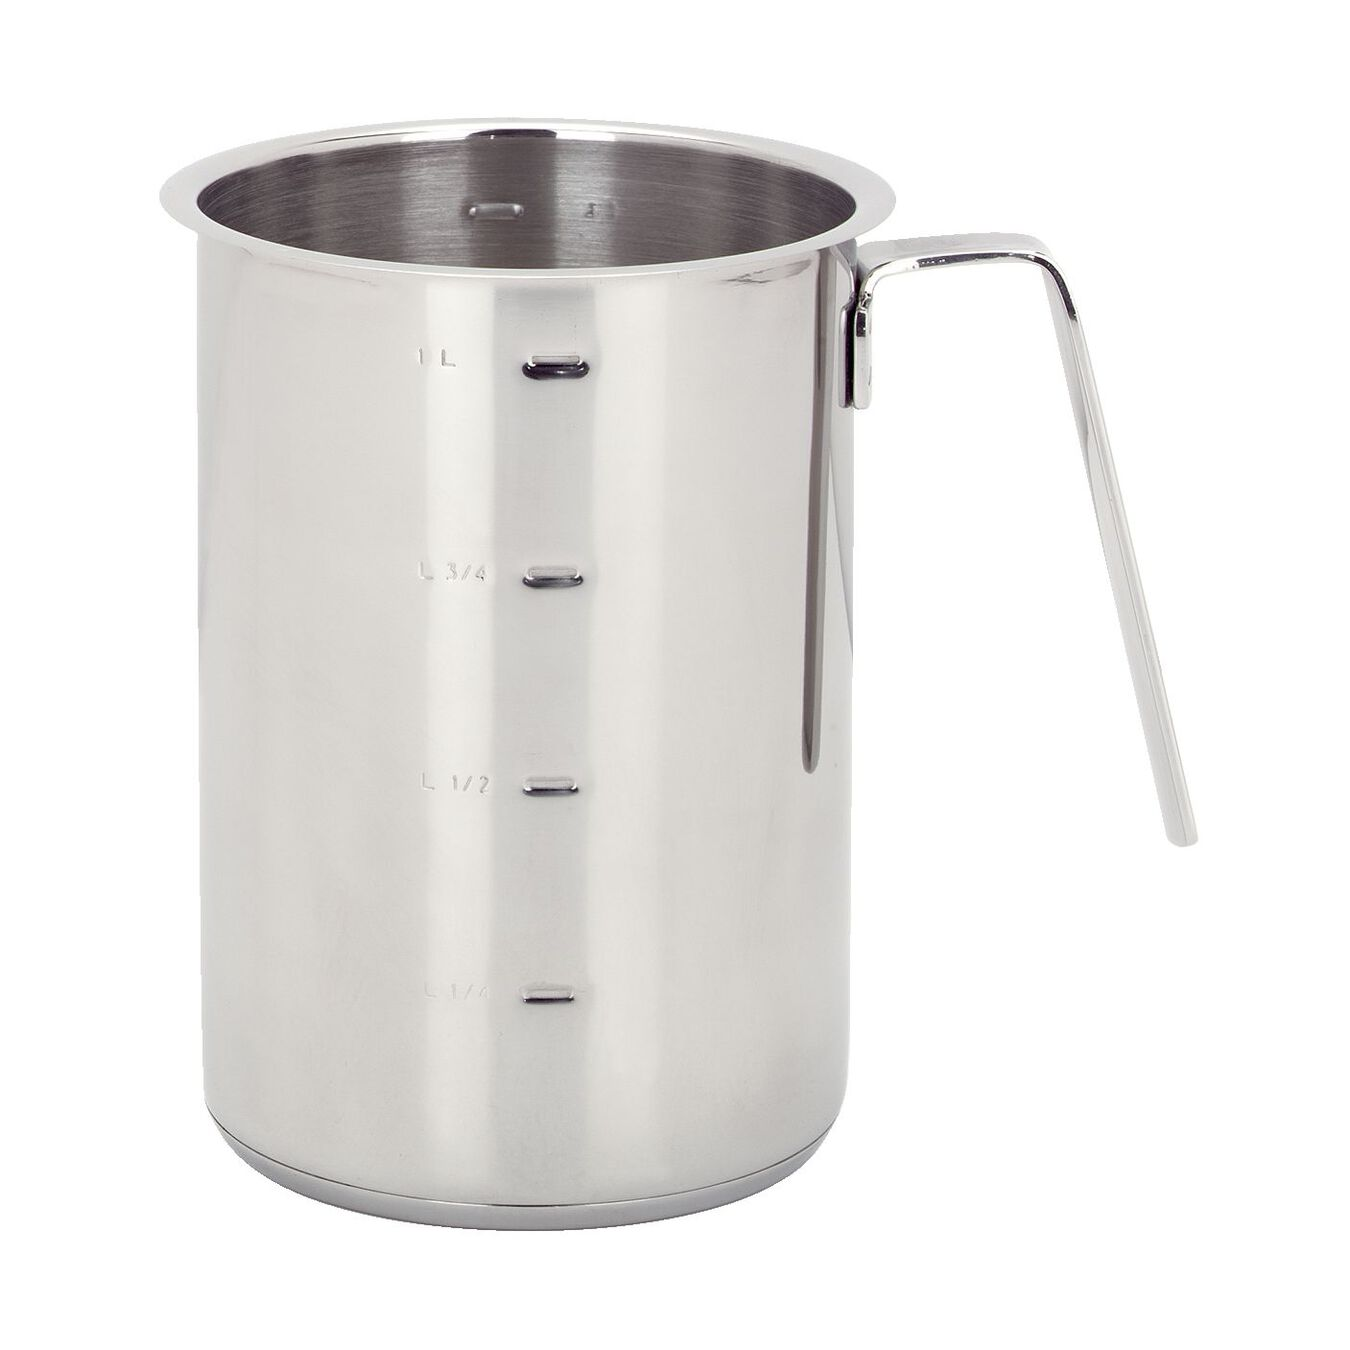 1.2-qt Stainless Steel Tall Saucepan,,large 1